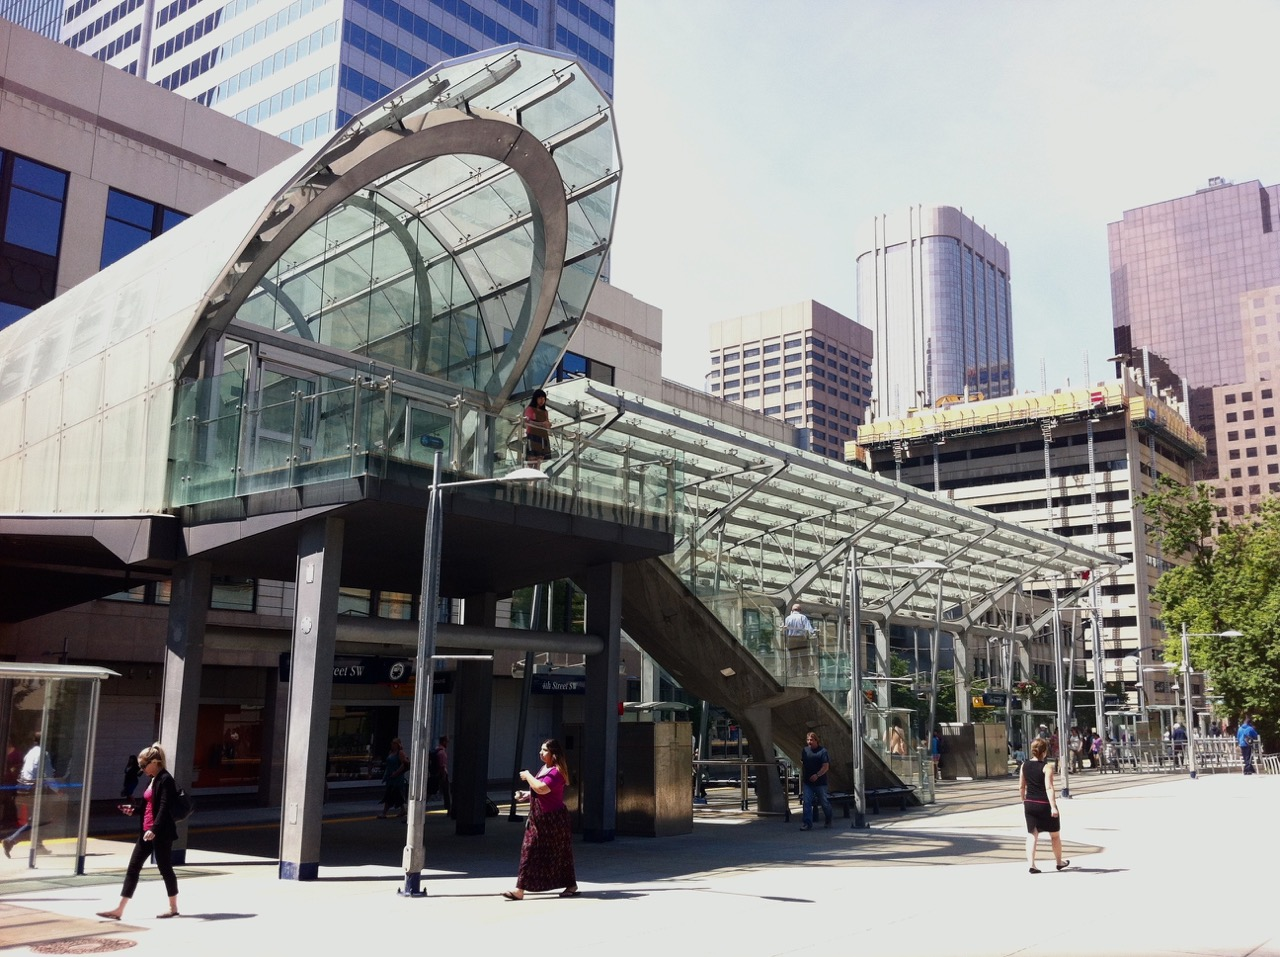 Calgary's 7th Avenue LRT station at Holt Renfew, opens to a lovely park that is popular with workers at noon hour.